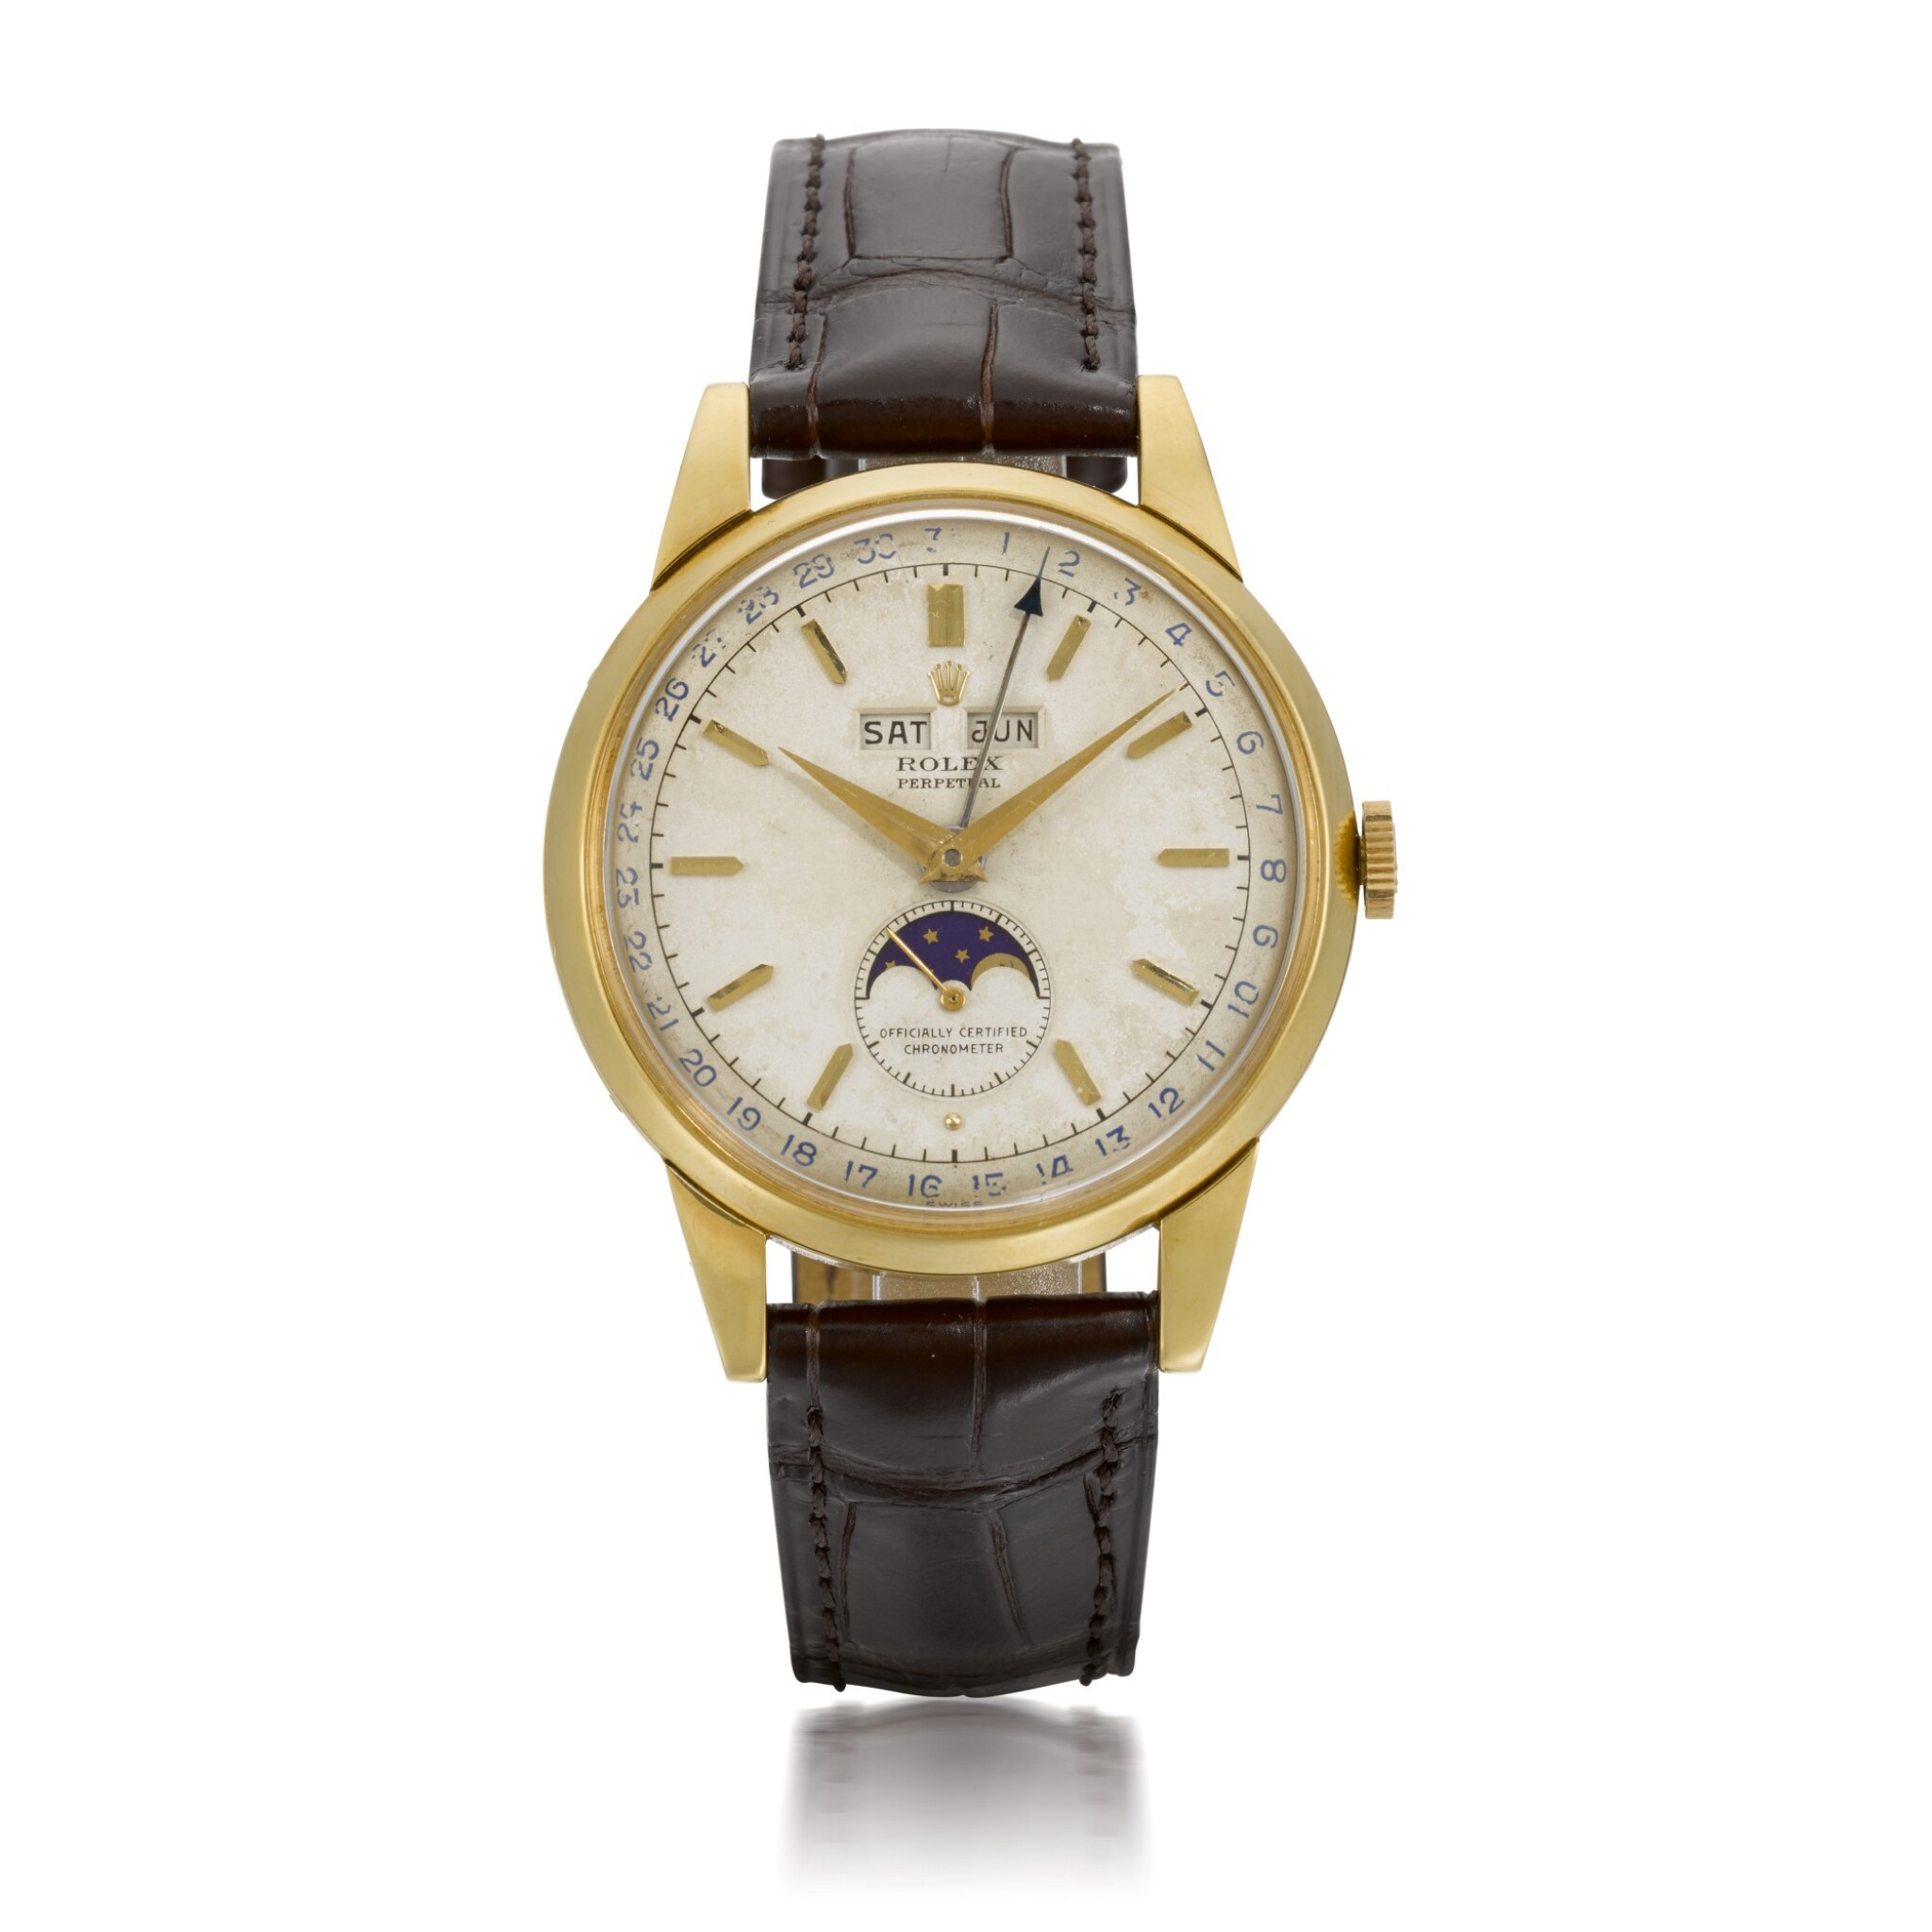 View full screen - View 1 of Lot 366. ROLEX   PADELLONE, REF 8171, YELLOW GOLD WRISTWATCH WITH DAY, DATE, MONTH AND MOONPHASE, CIRCA 1952.